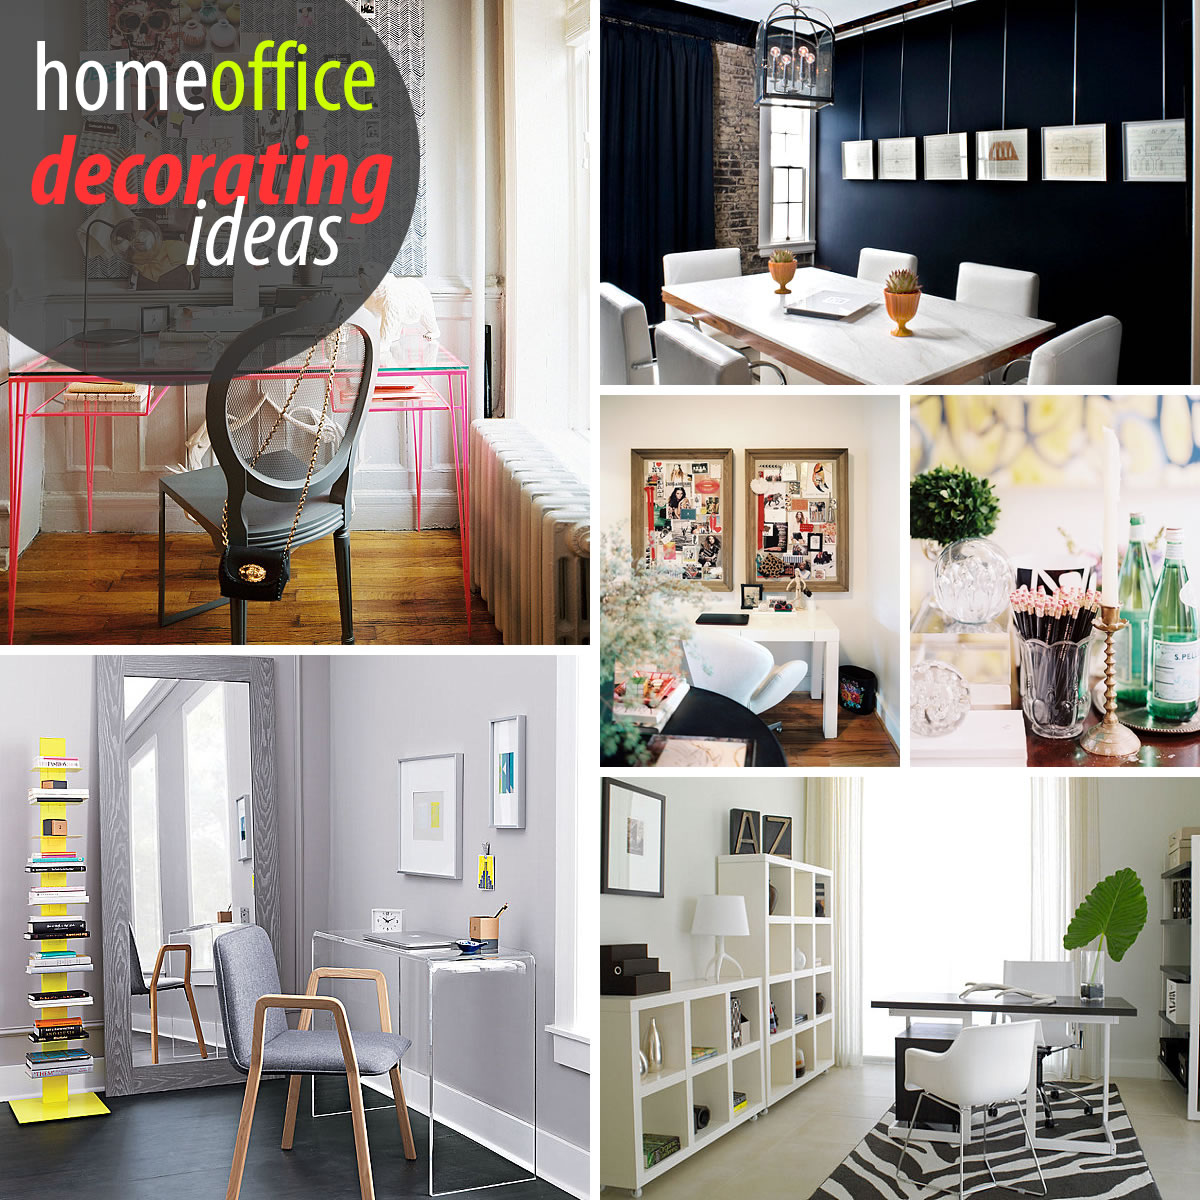 energizing home office decoration ideas. energizing home office decoration ideas i